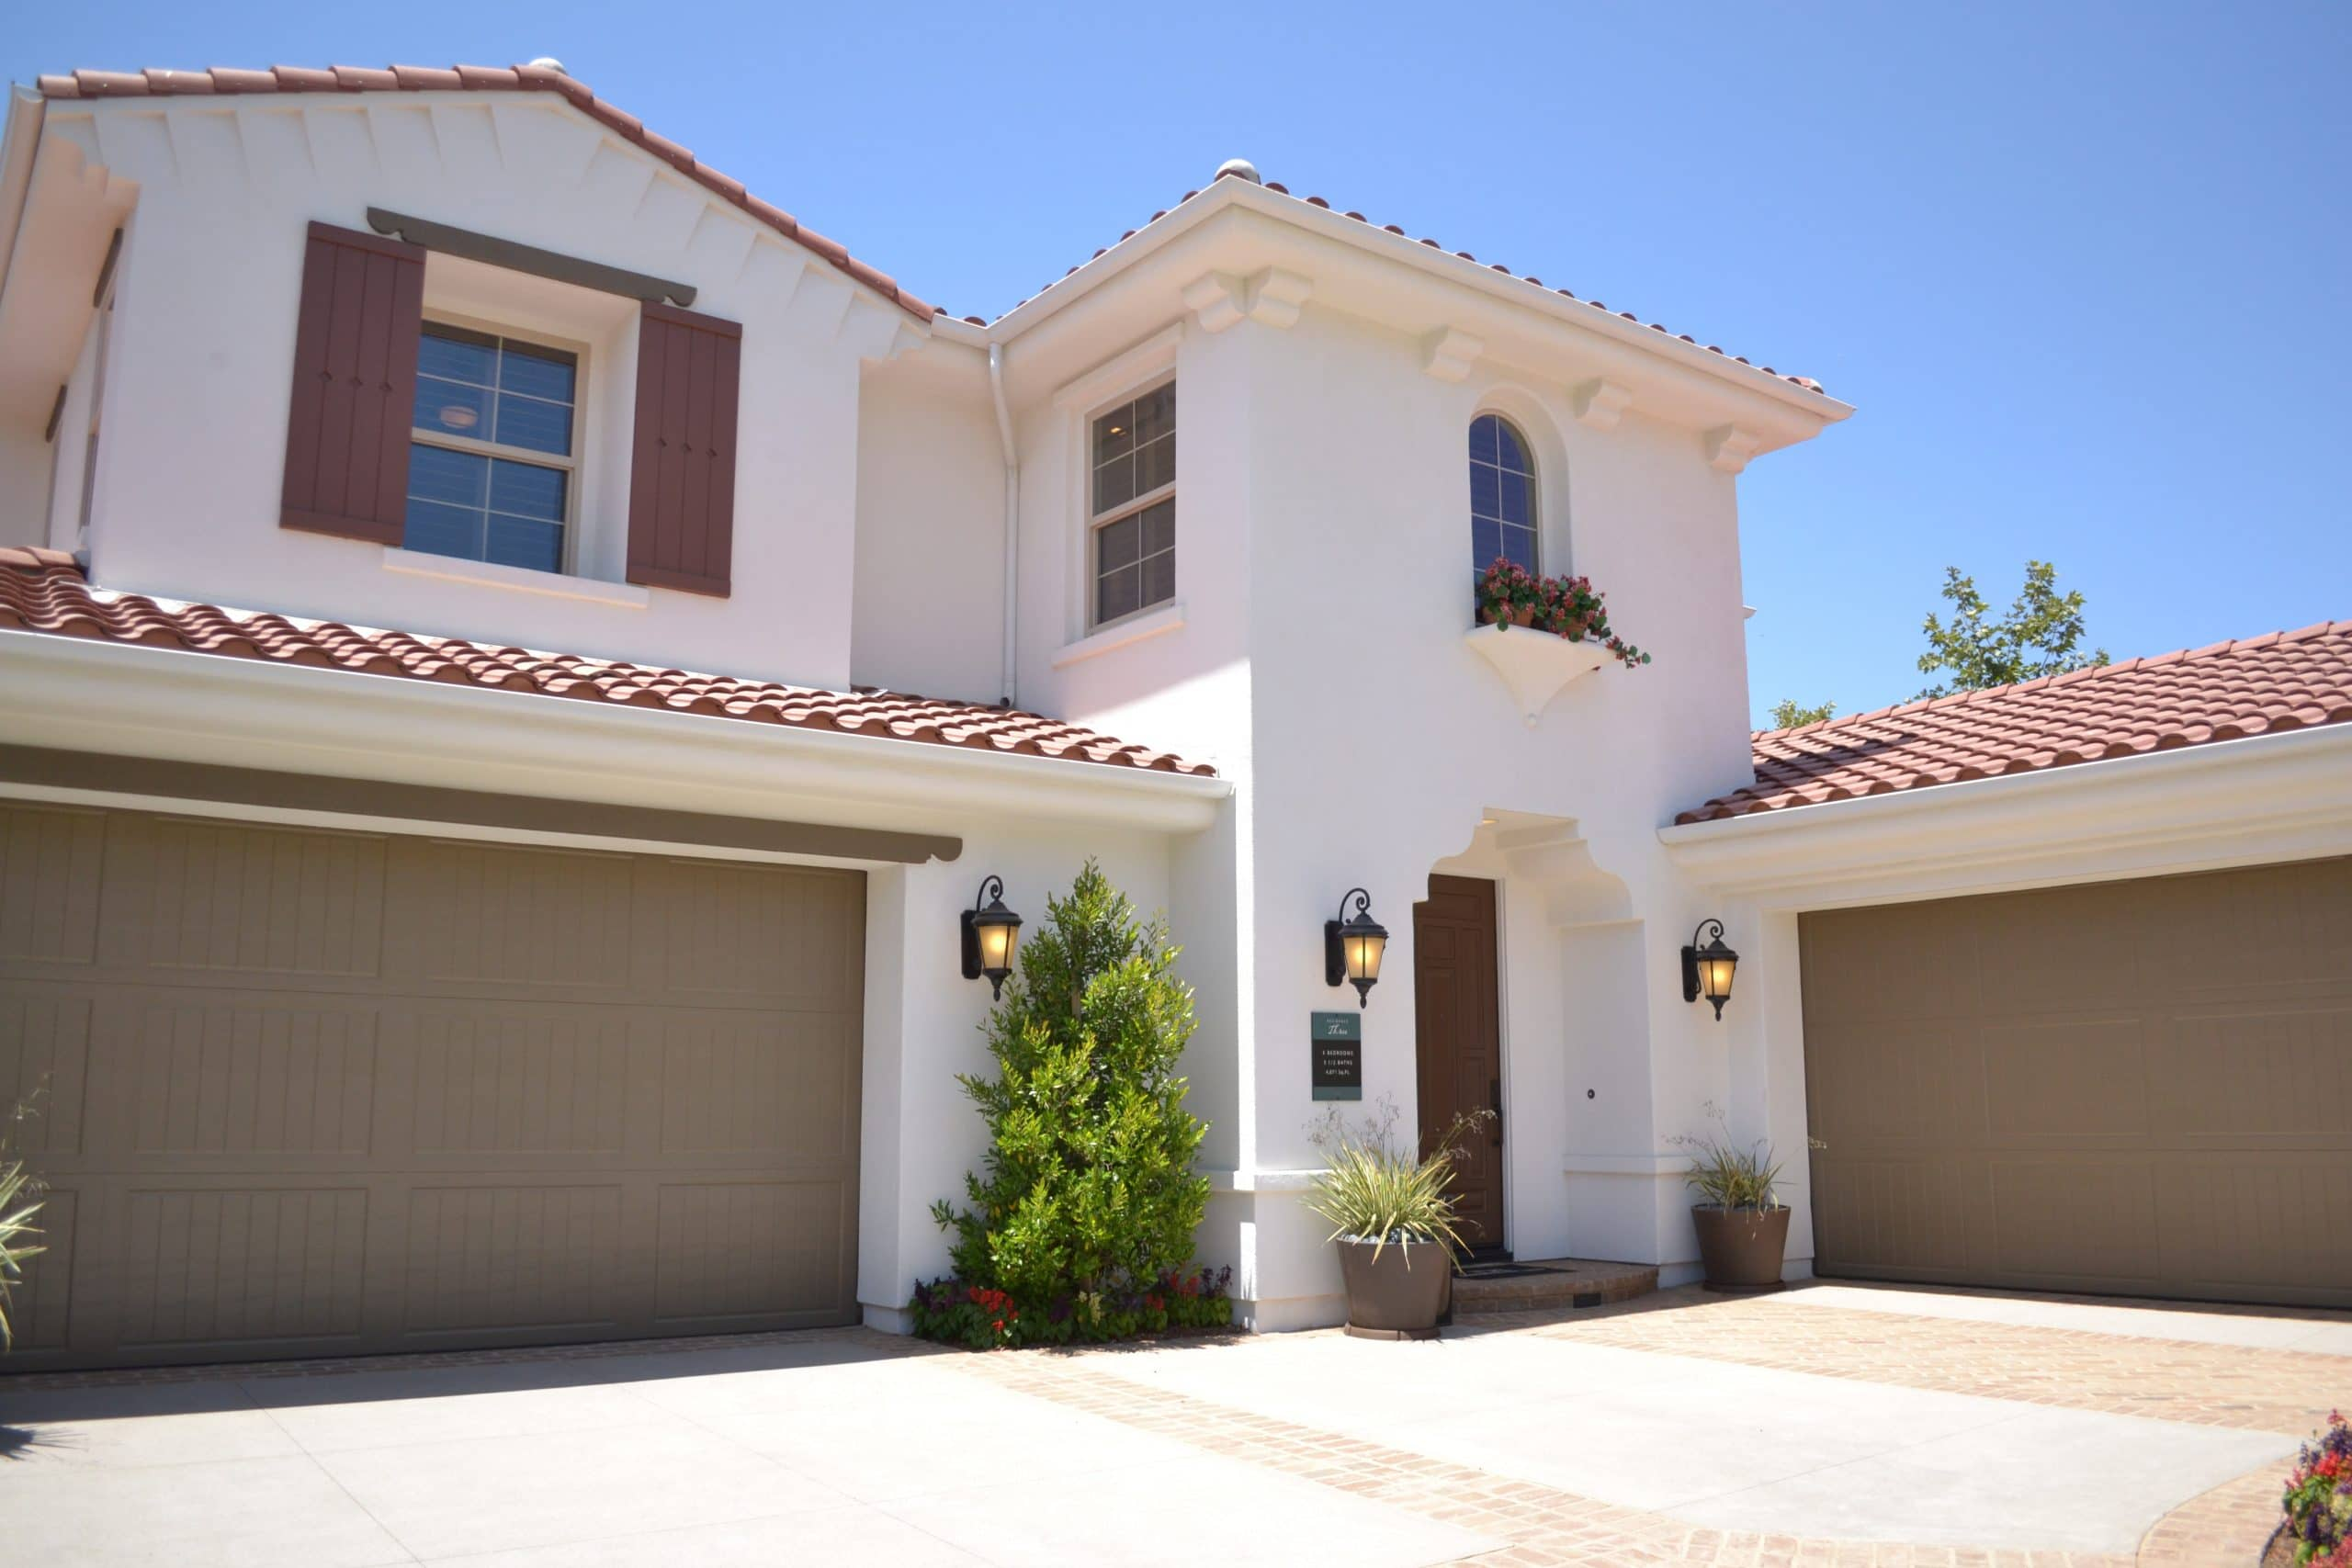 Buying a Home in Las Vegas: The Things You Should Know